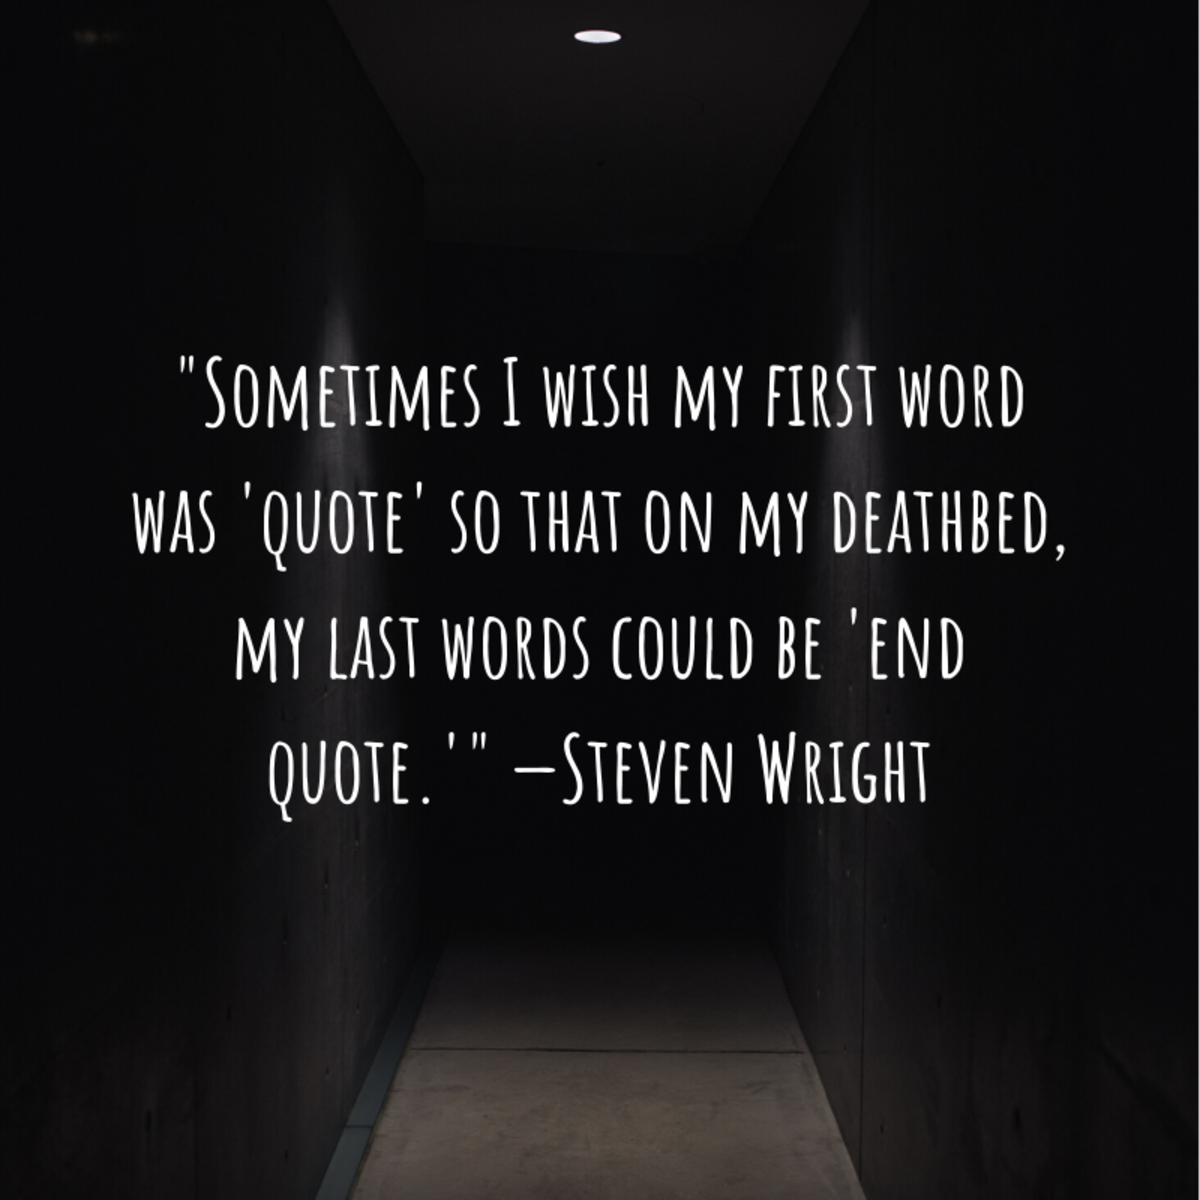 """Sometimes I wish my first word was 'quote' so that on my deathbed, my last words could be 'end quote.'"" —Steven Wright (comedian)"